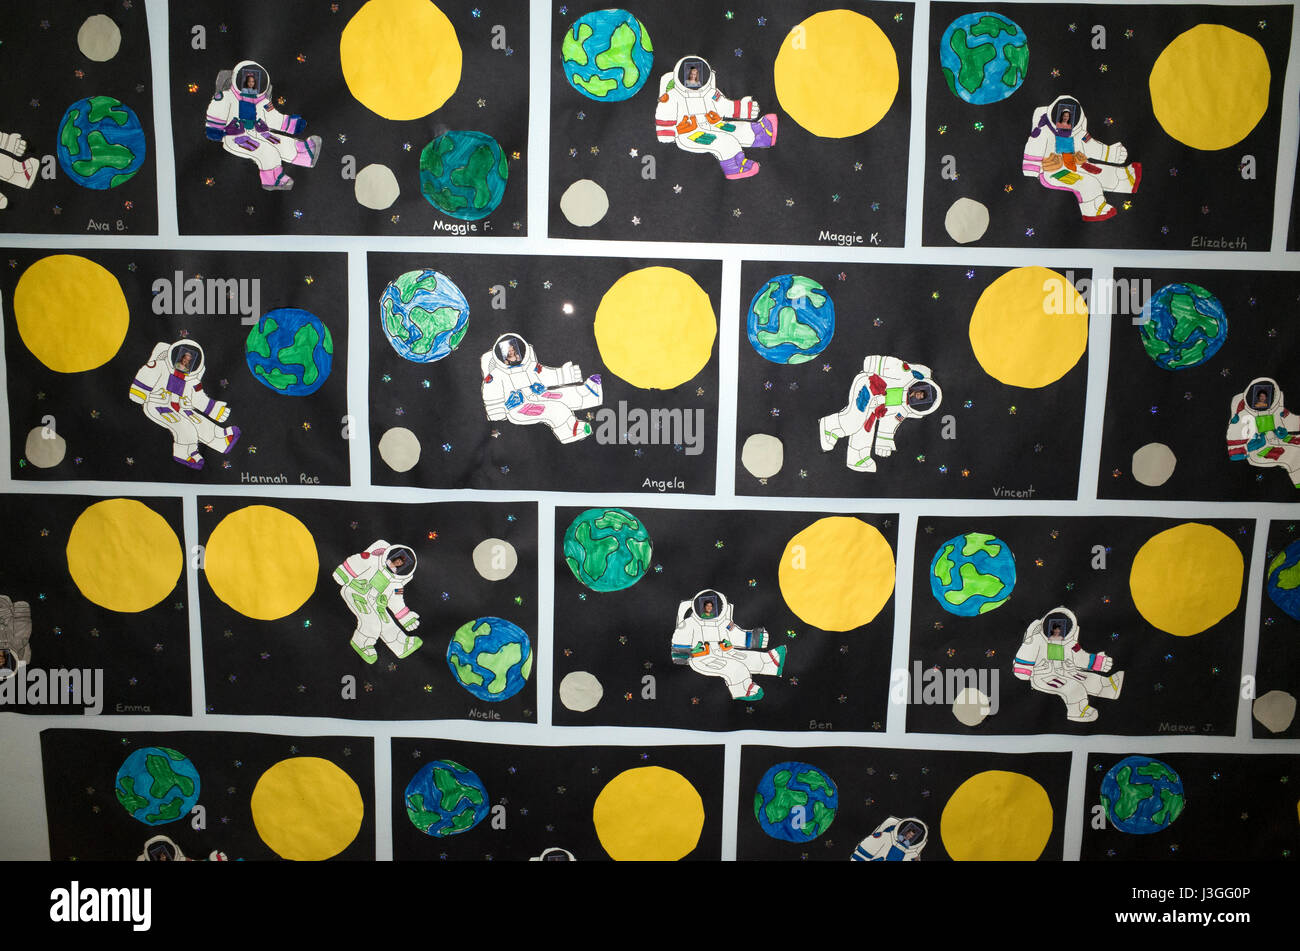 Elementary school children put their photos in outer space suits. St Paul Minnesota MN USA - Stock Image